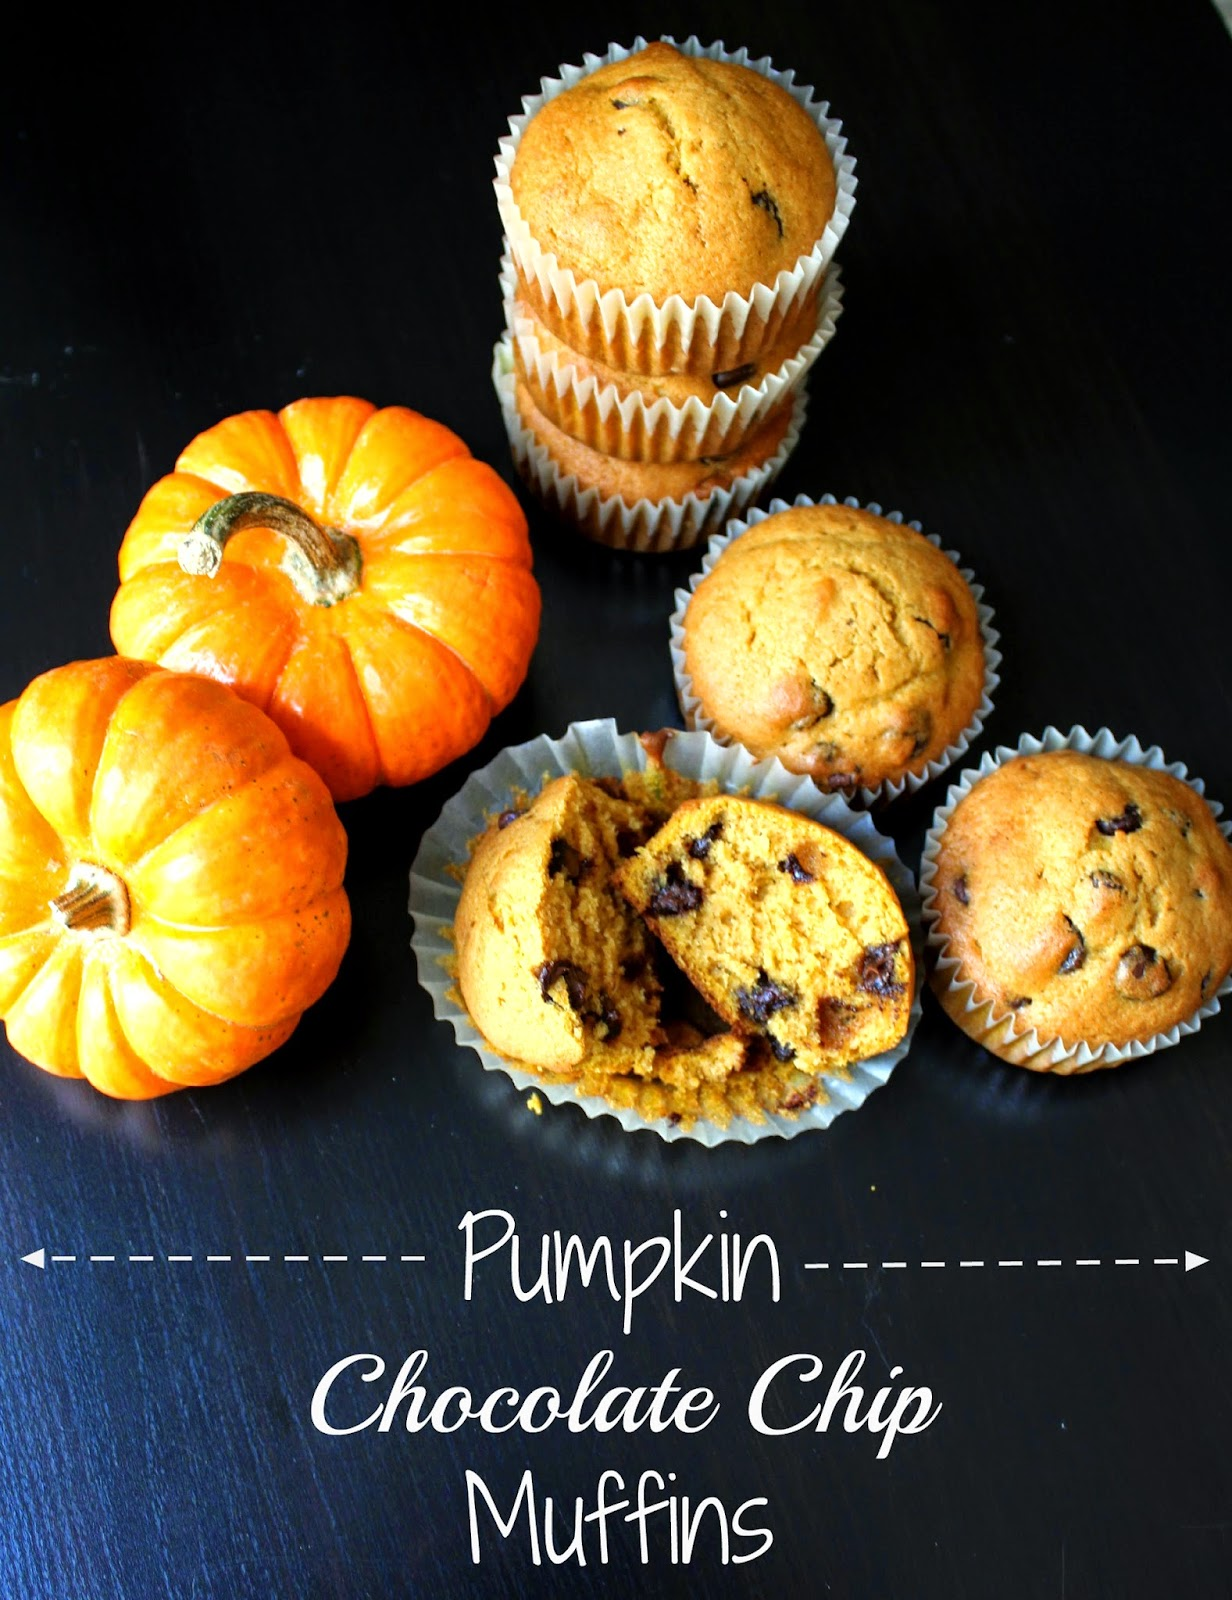 Pumpkin Chocolate Chip Muffins!